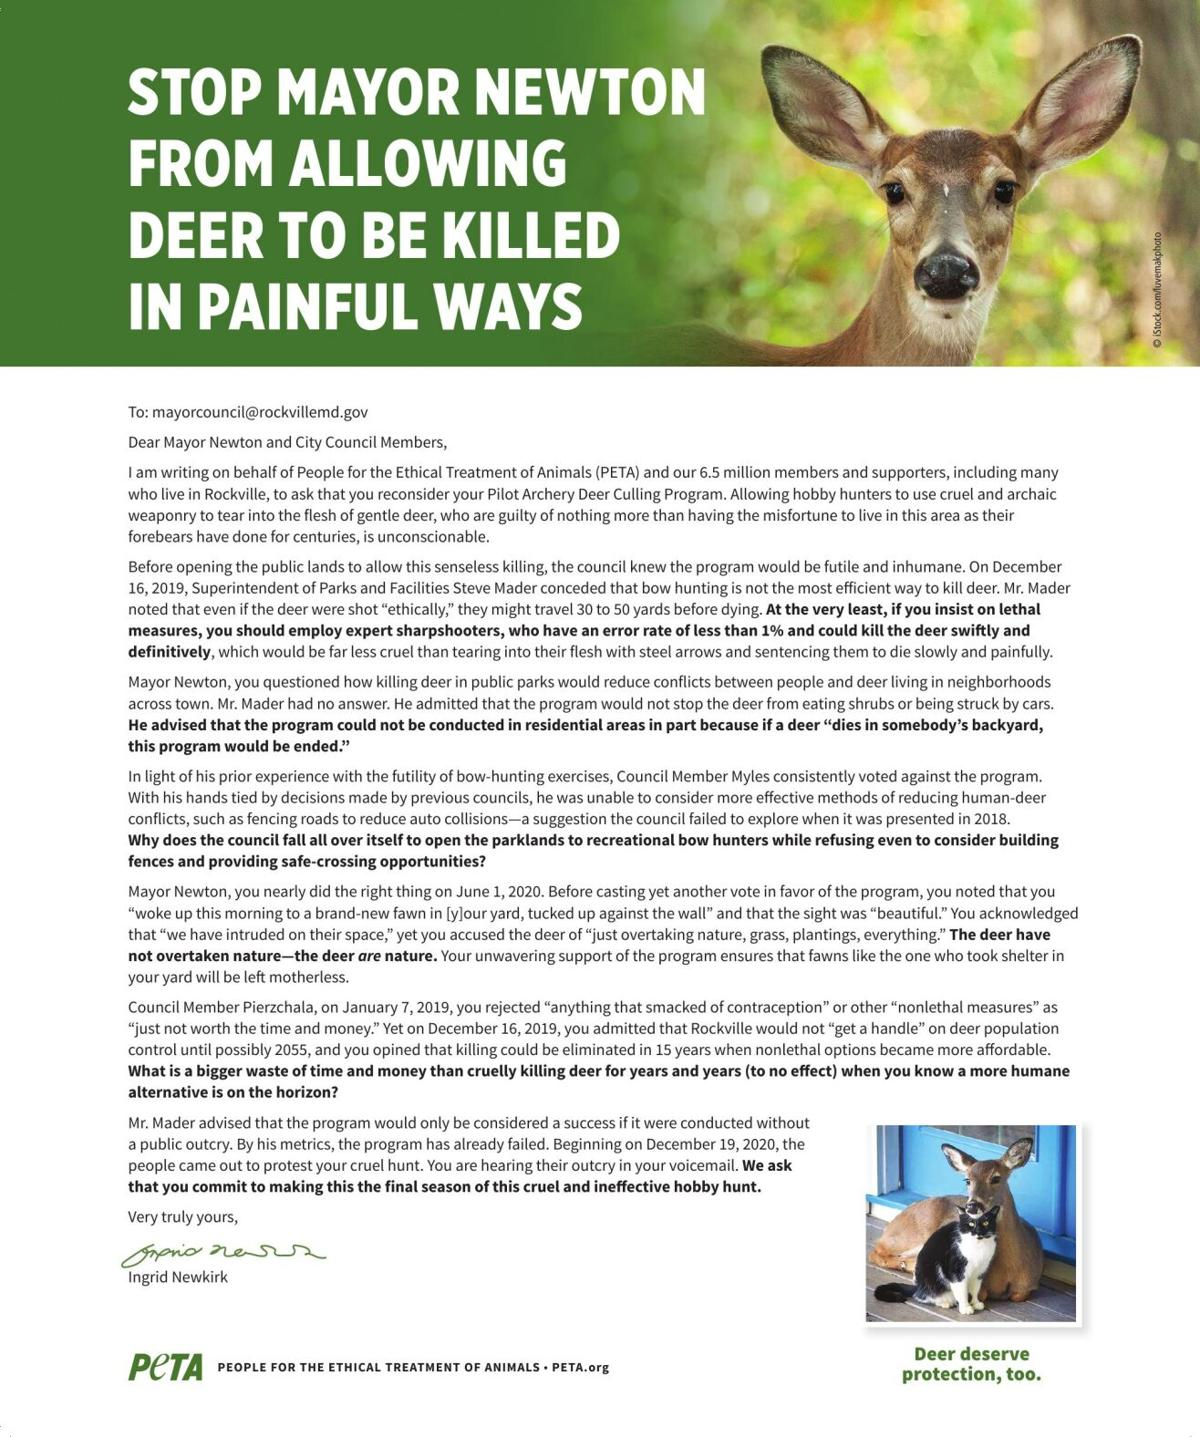 Stop Mayor Newton From Allowing Deer To Be Killed In Painful Ways